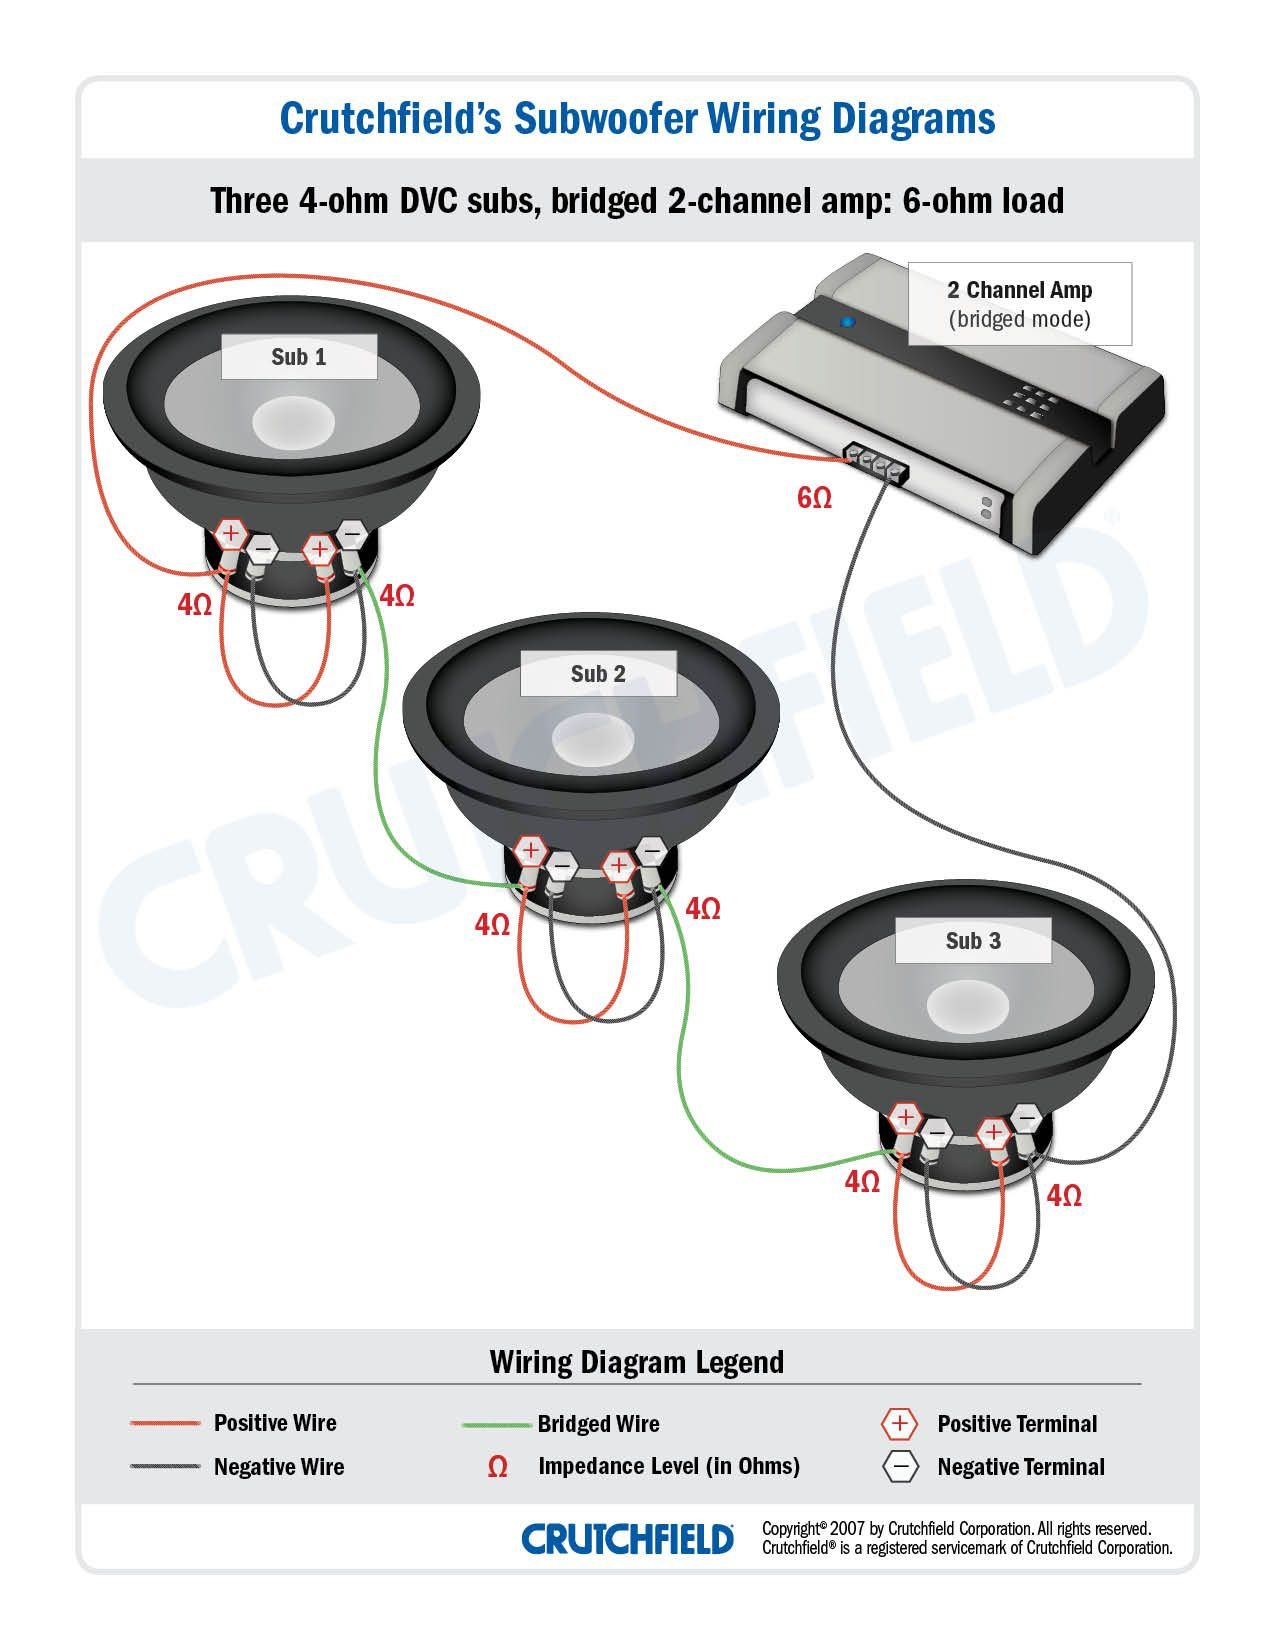 Top 10 Subwoofer Wiring Diagram Free Download 3 DVC 4 Ohm 2 Ch Top 10 Subwoofer Wiring Diagram